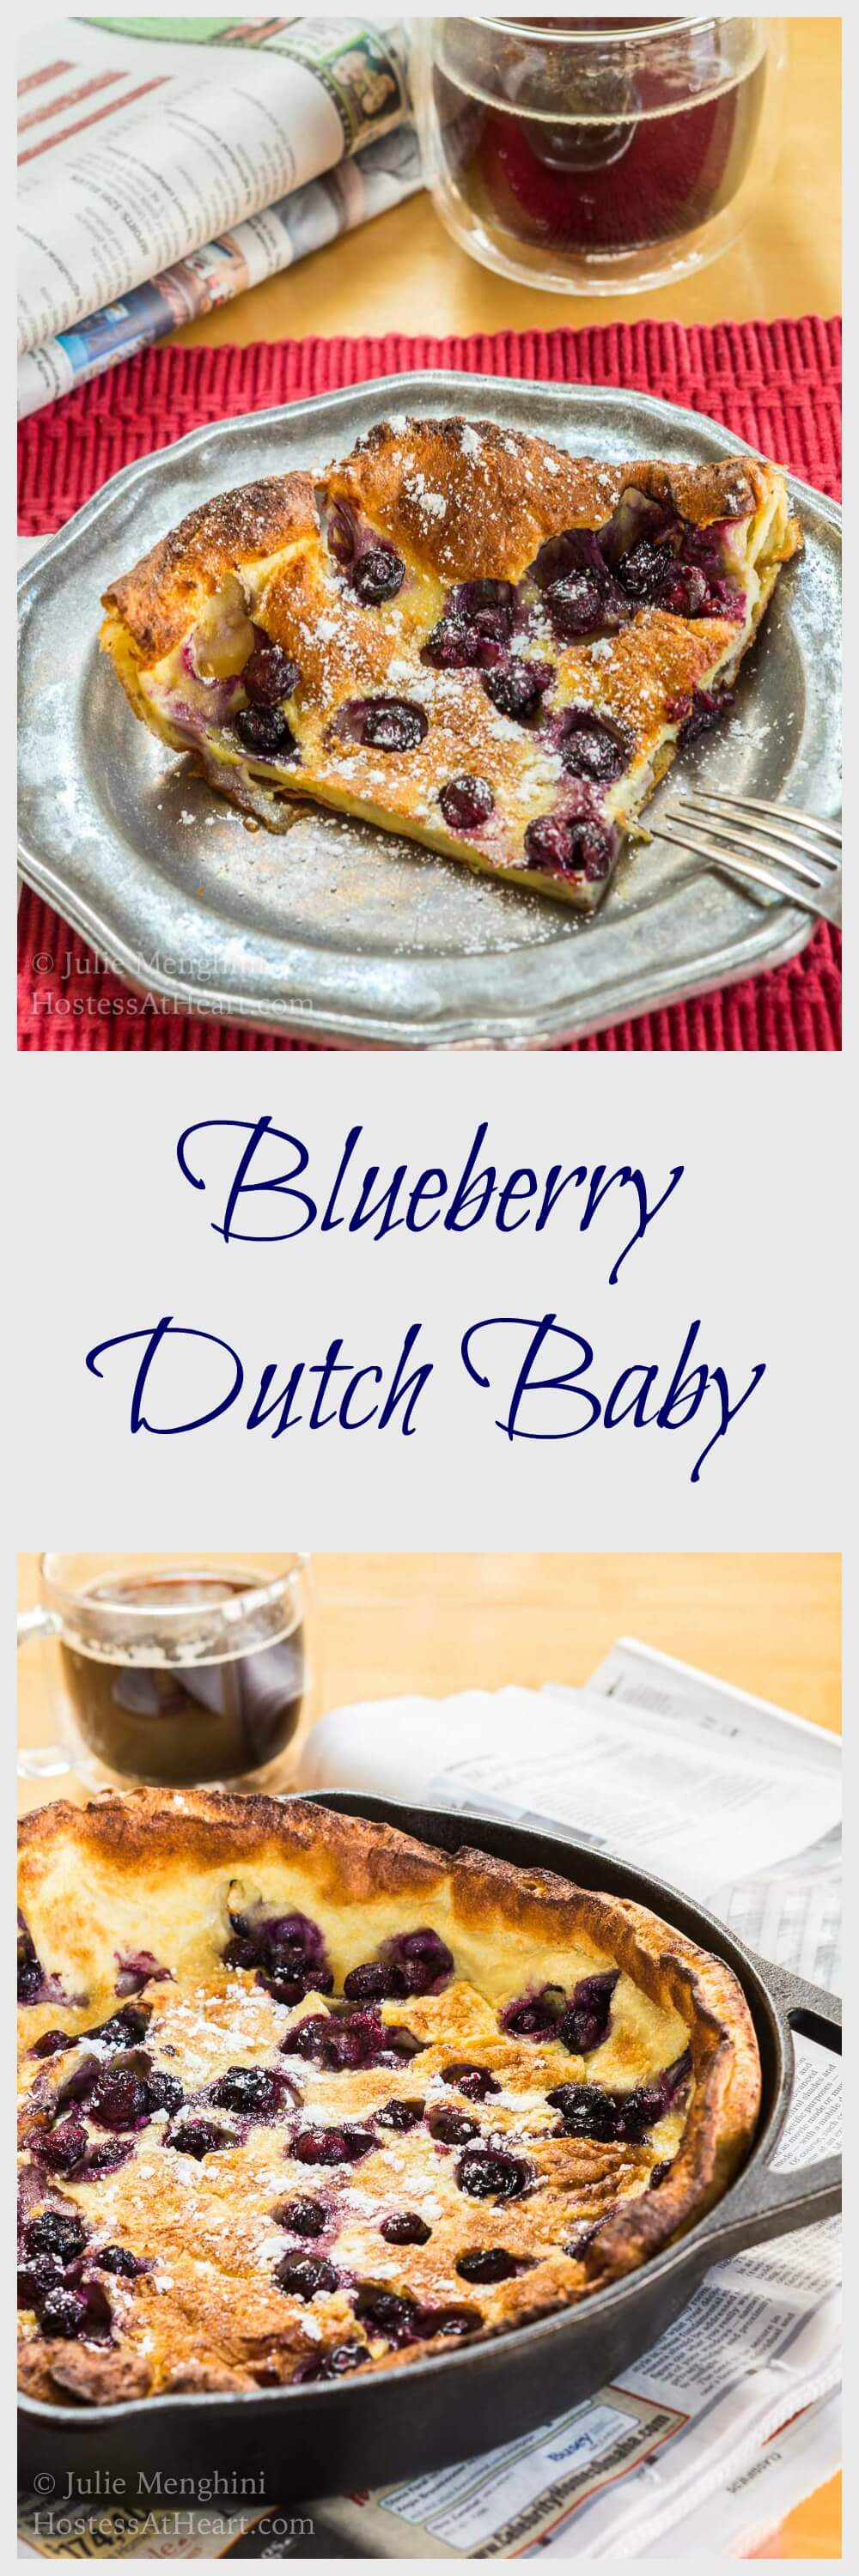 Blueberry Dutch Baby is like a buttery, tender, and slightly sweet pancake.  There isn't any flipping or dripping and cleanup is a breeze.  #breakfast, #breakfastrecipe, #baking